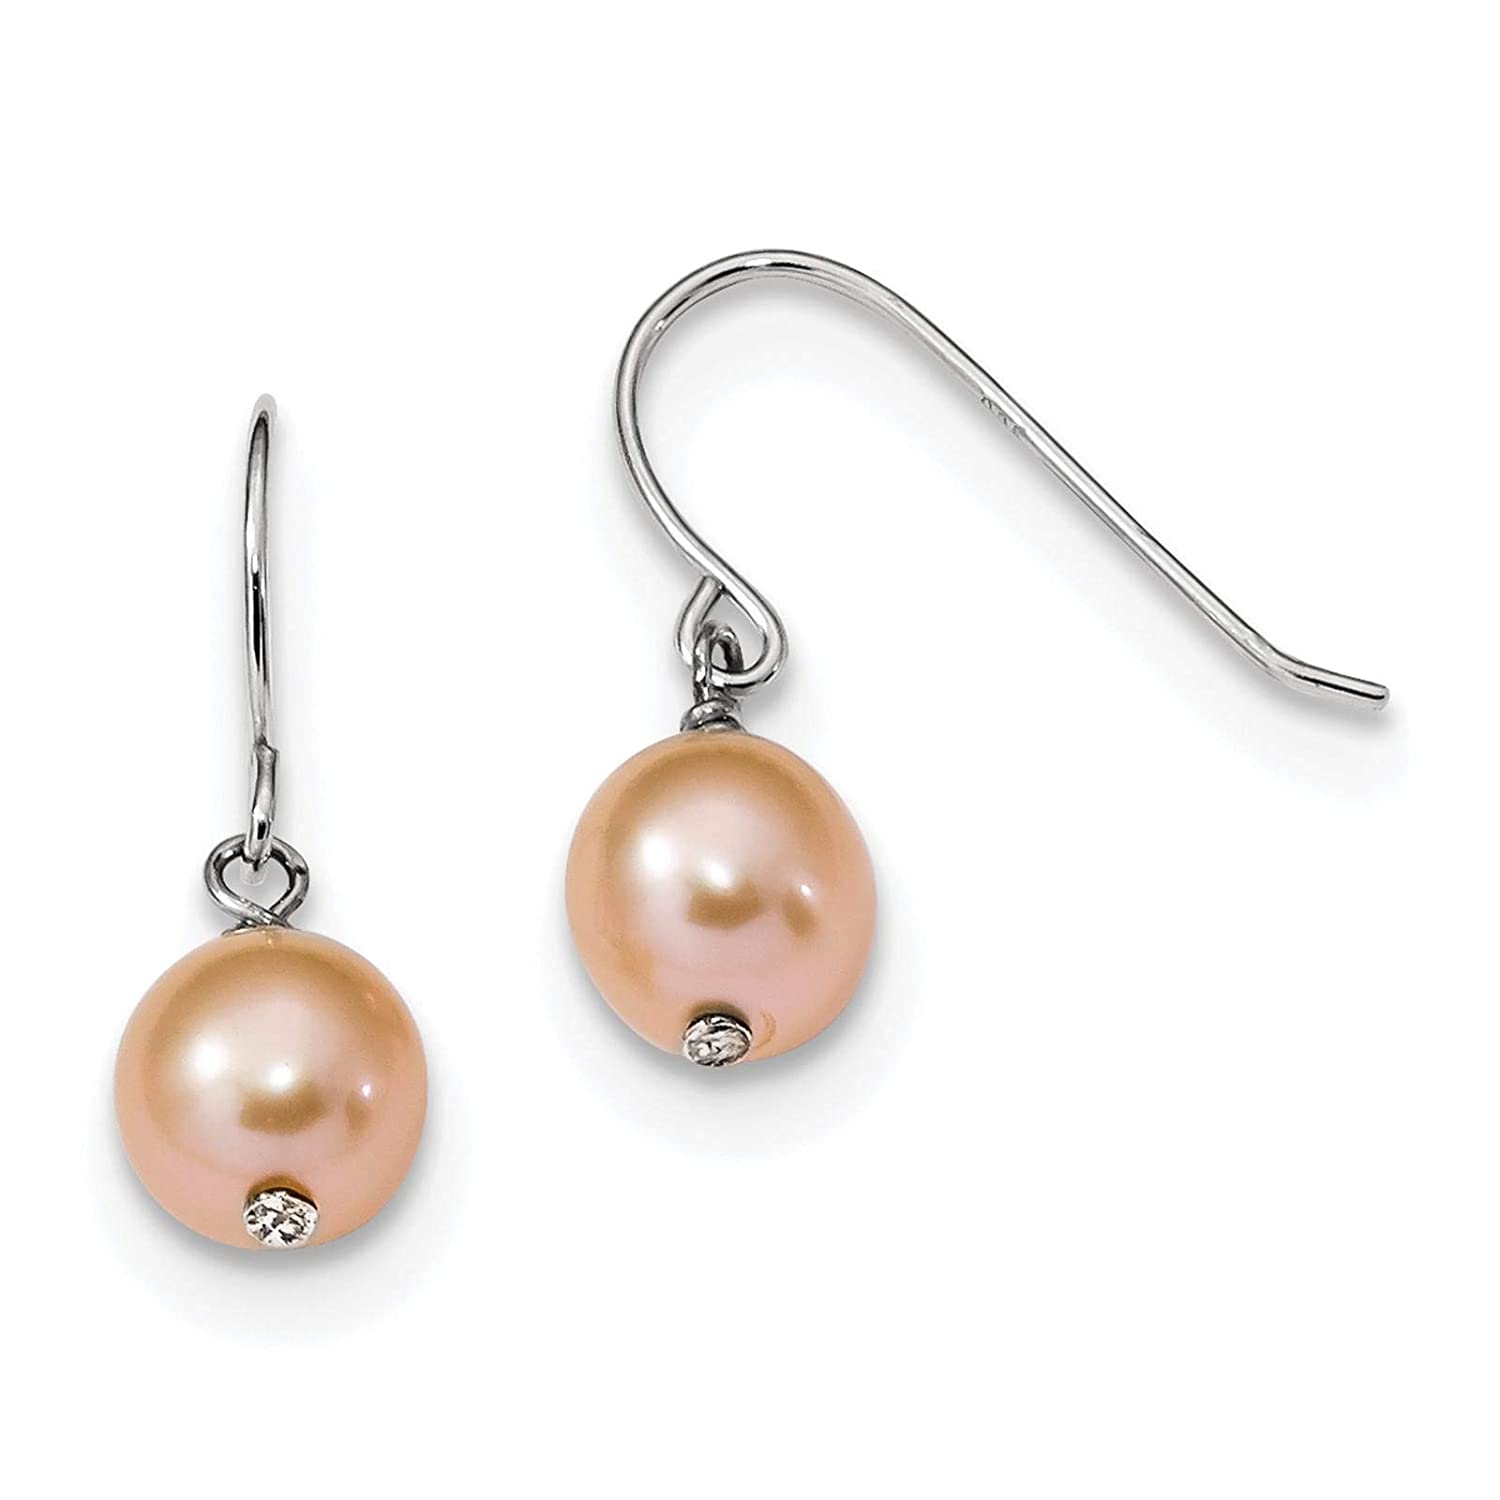 .925 Sterling Silver Rhodium-plated 7-8mm Pink Freshwater Cultured Dangle Earrings